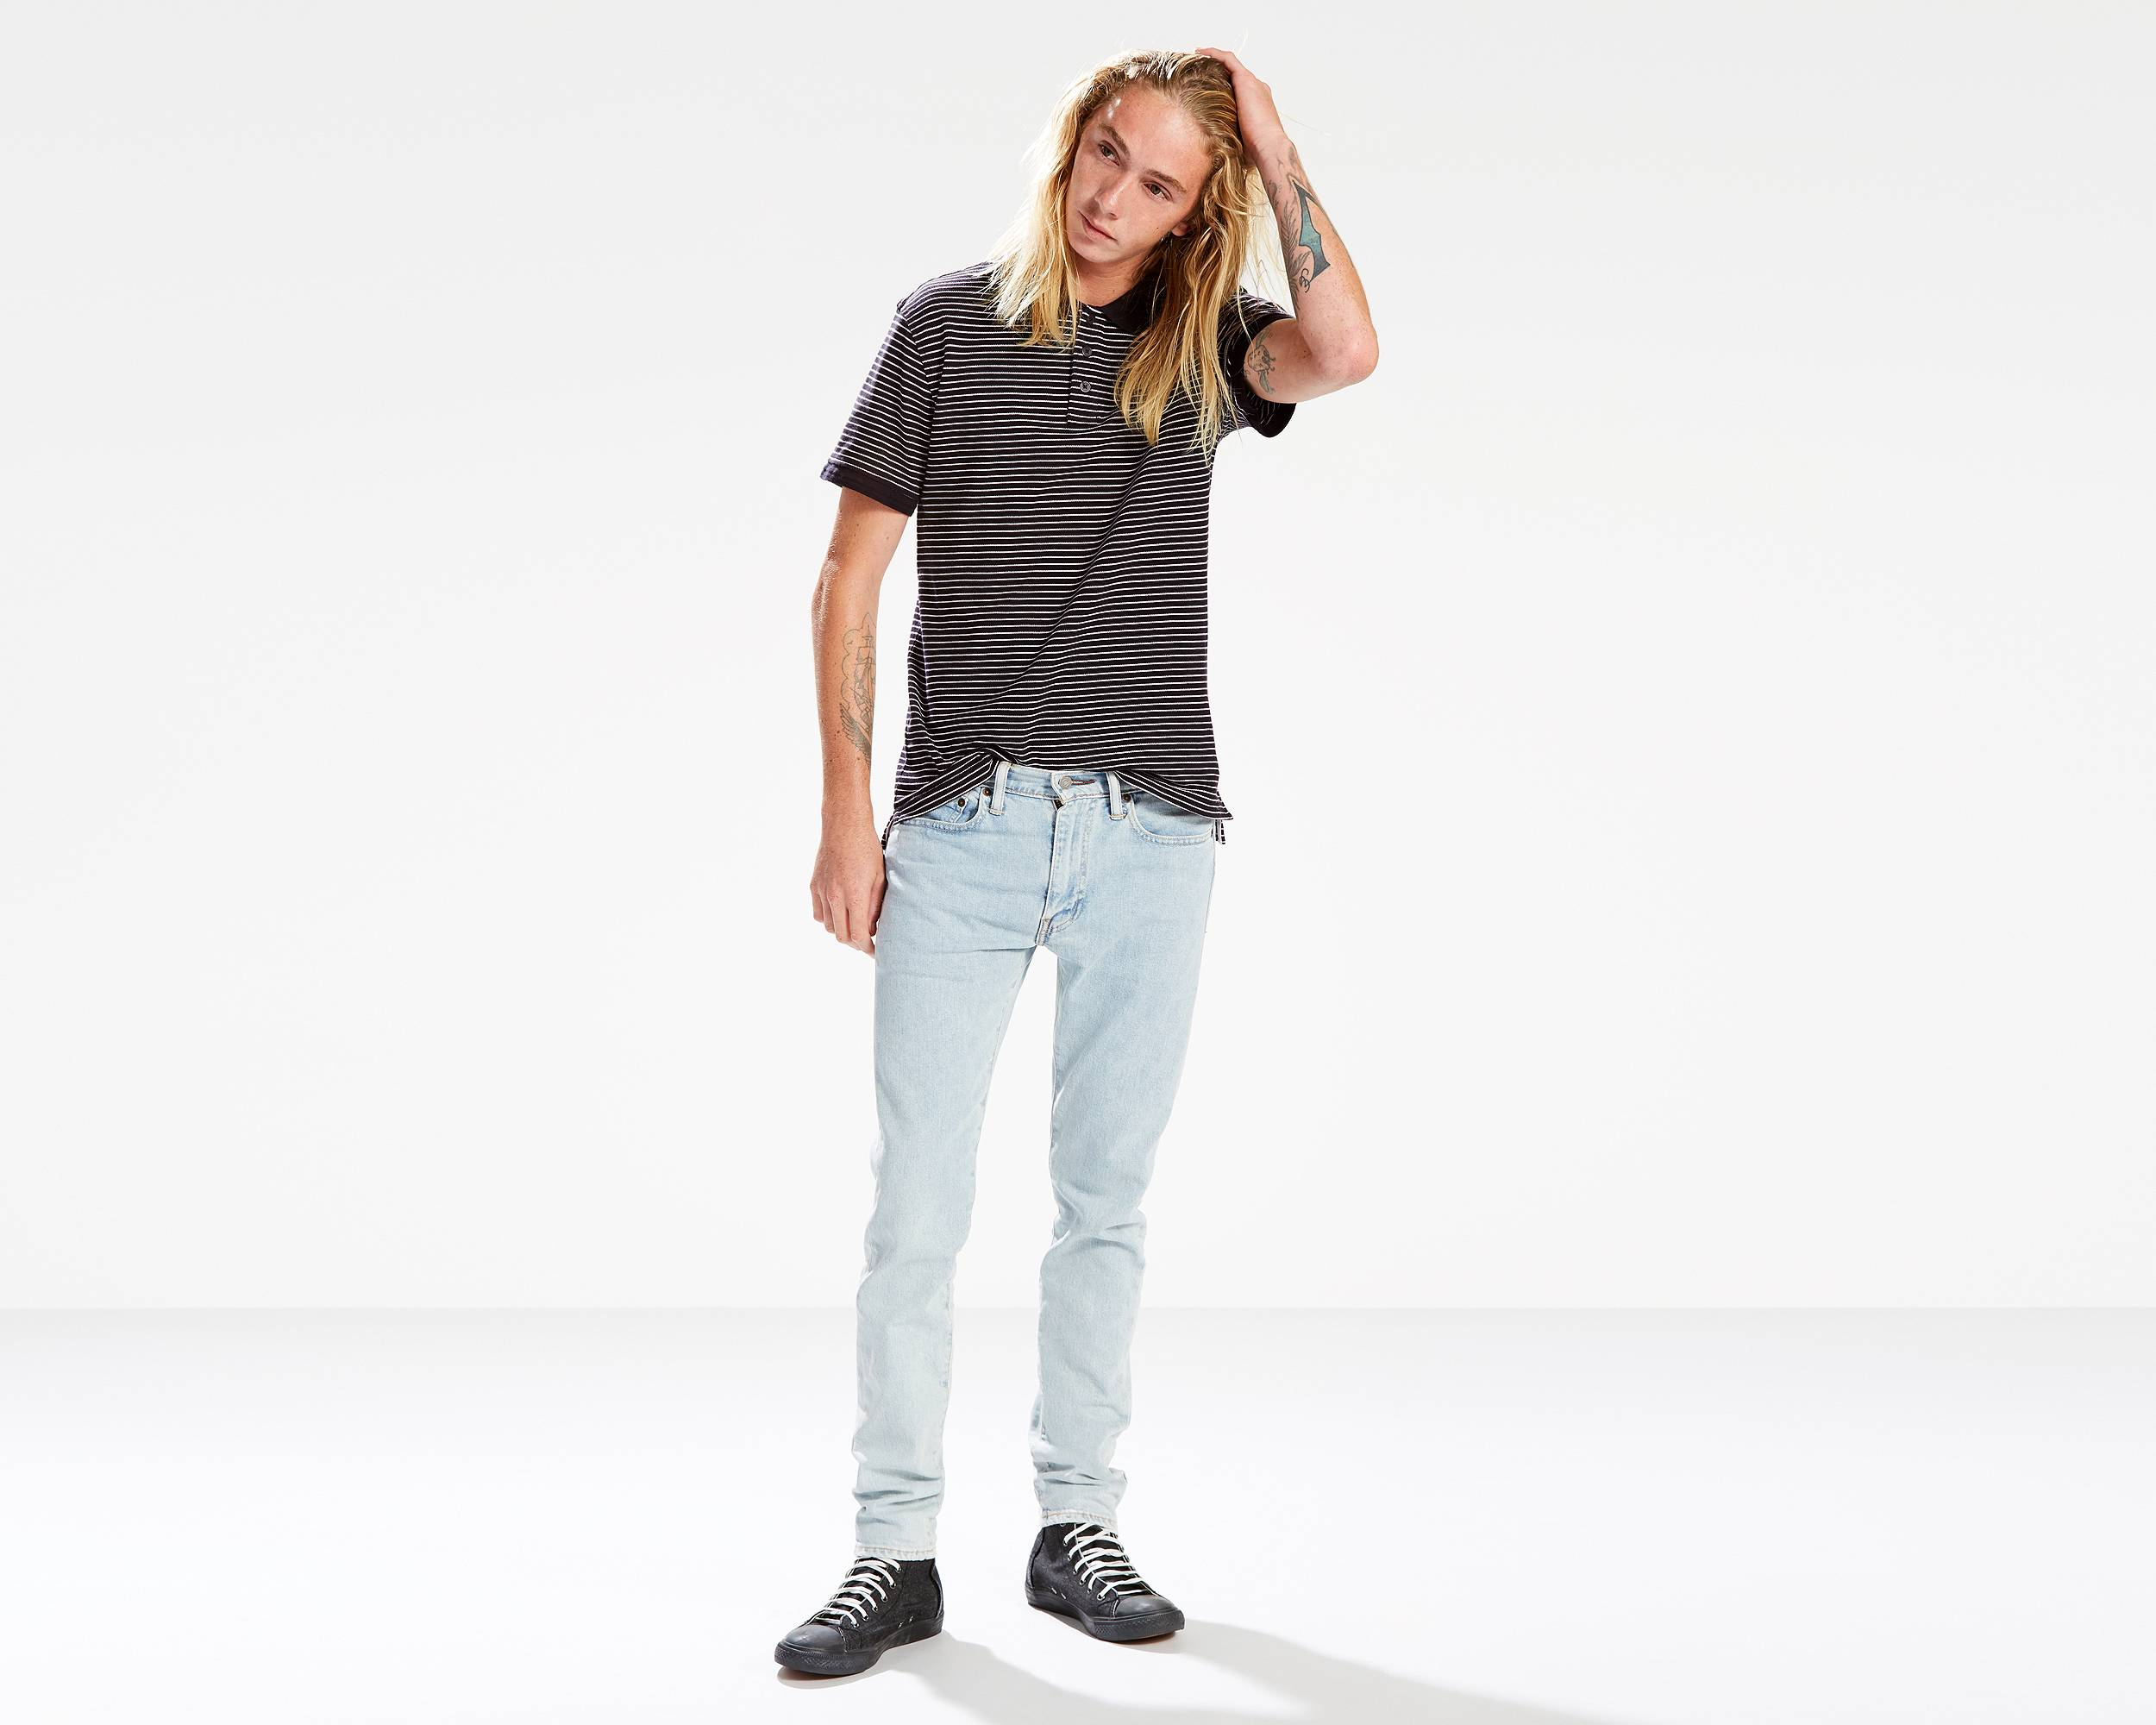 519™ Extreme Skinny Stretch Jeans | Summerburst |Levi's® United ...